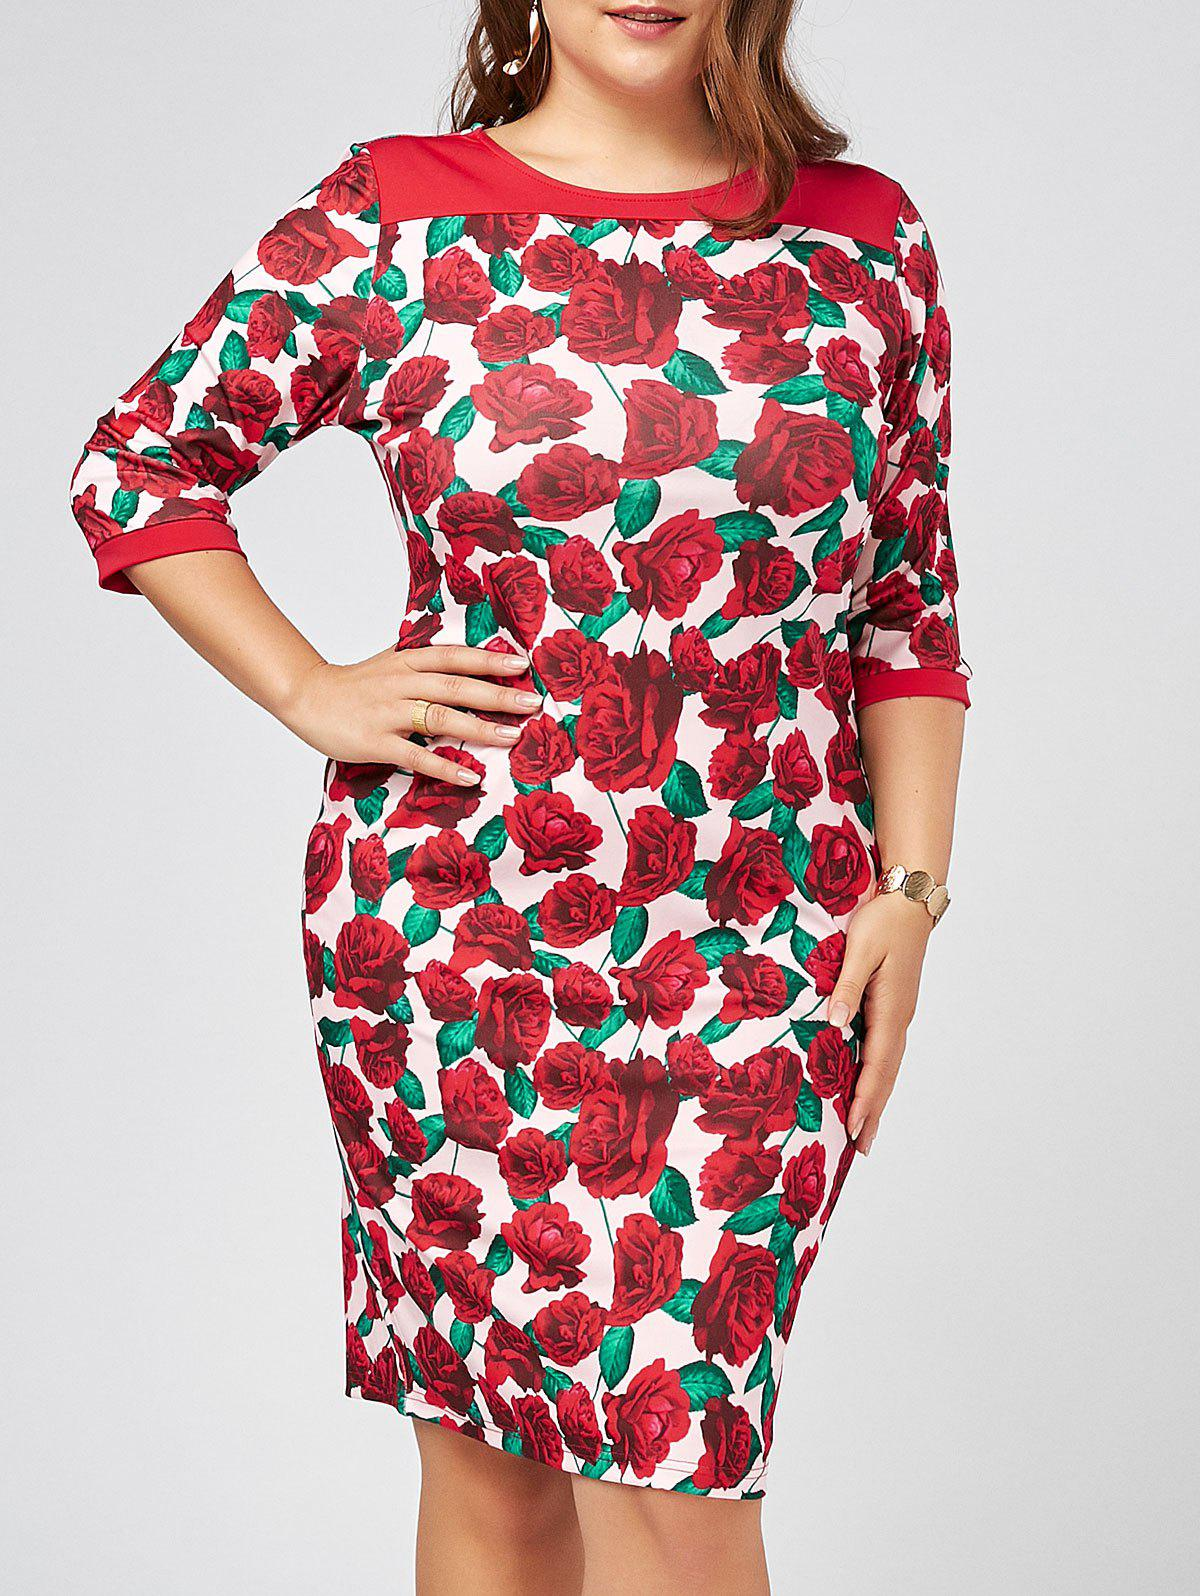 Plus Size Floral Printed Bodycon Dress with Sleeves high quality couplers plastic shaft blade foot seat replacement for philips hr2003 hr2004 hr2006 hr2024 hr2027 blender parts